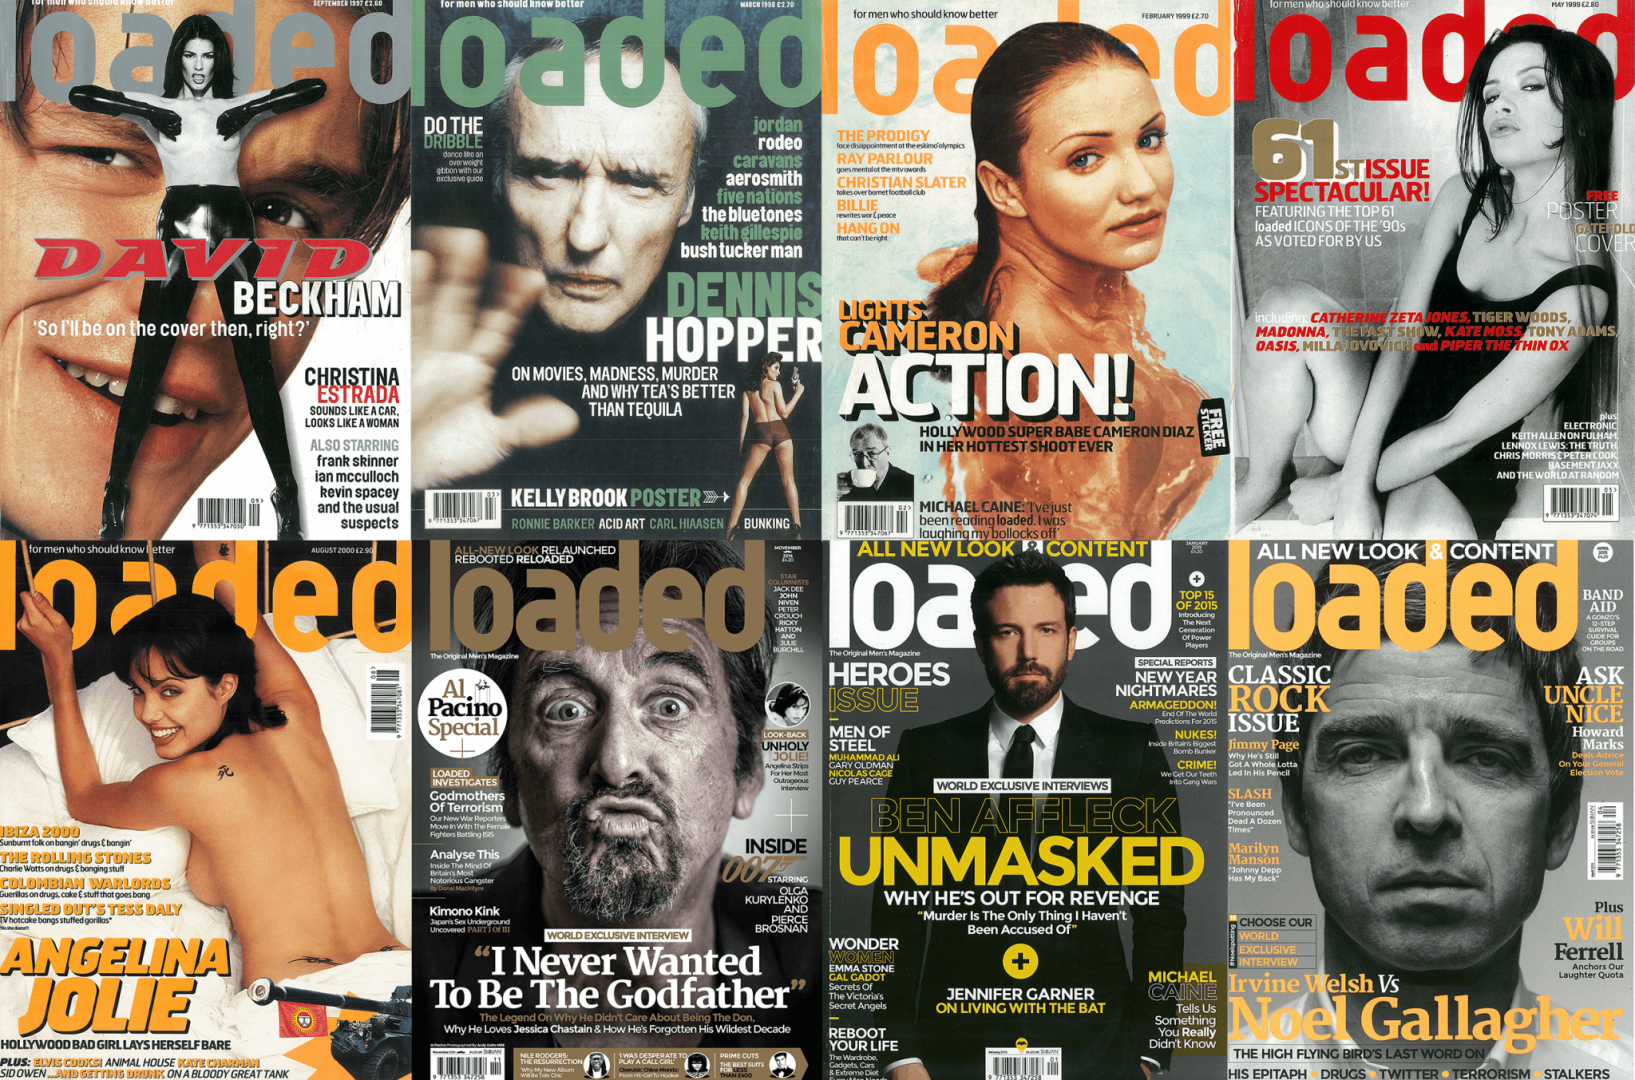 A selection of Loaded magazine's finest covers